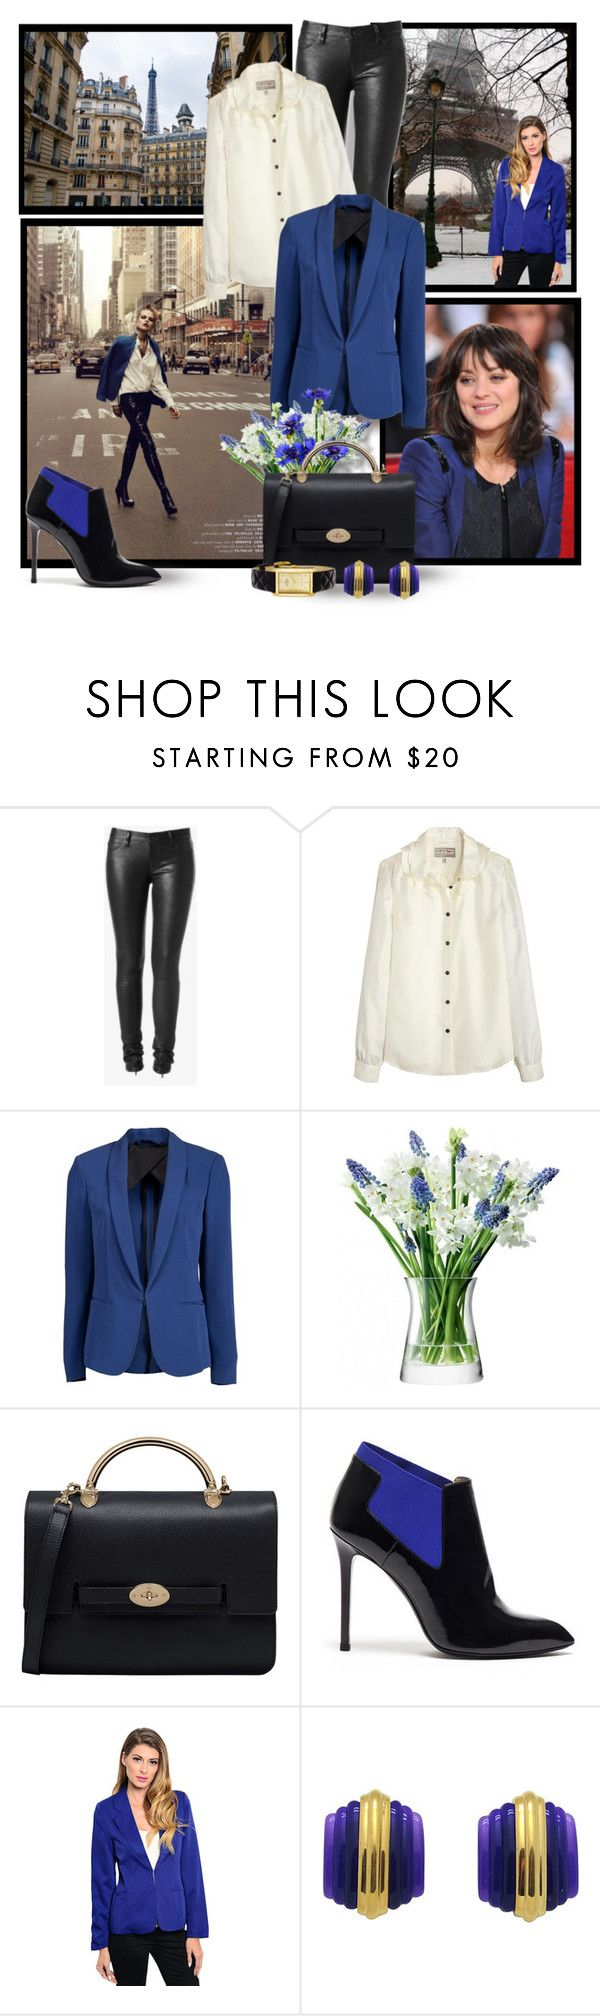 """Street Style in Paris & New York : Royal Blue Blazer & Black Leather Pants"" by mary-gereis ❤ liked on Polyvore featuring Hudson Jeans, Aubin & Wills, rag & bone, LSA International, Mulberry, Kate Spade, women's clothing, women's fashion, women and female"